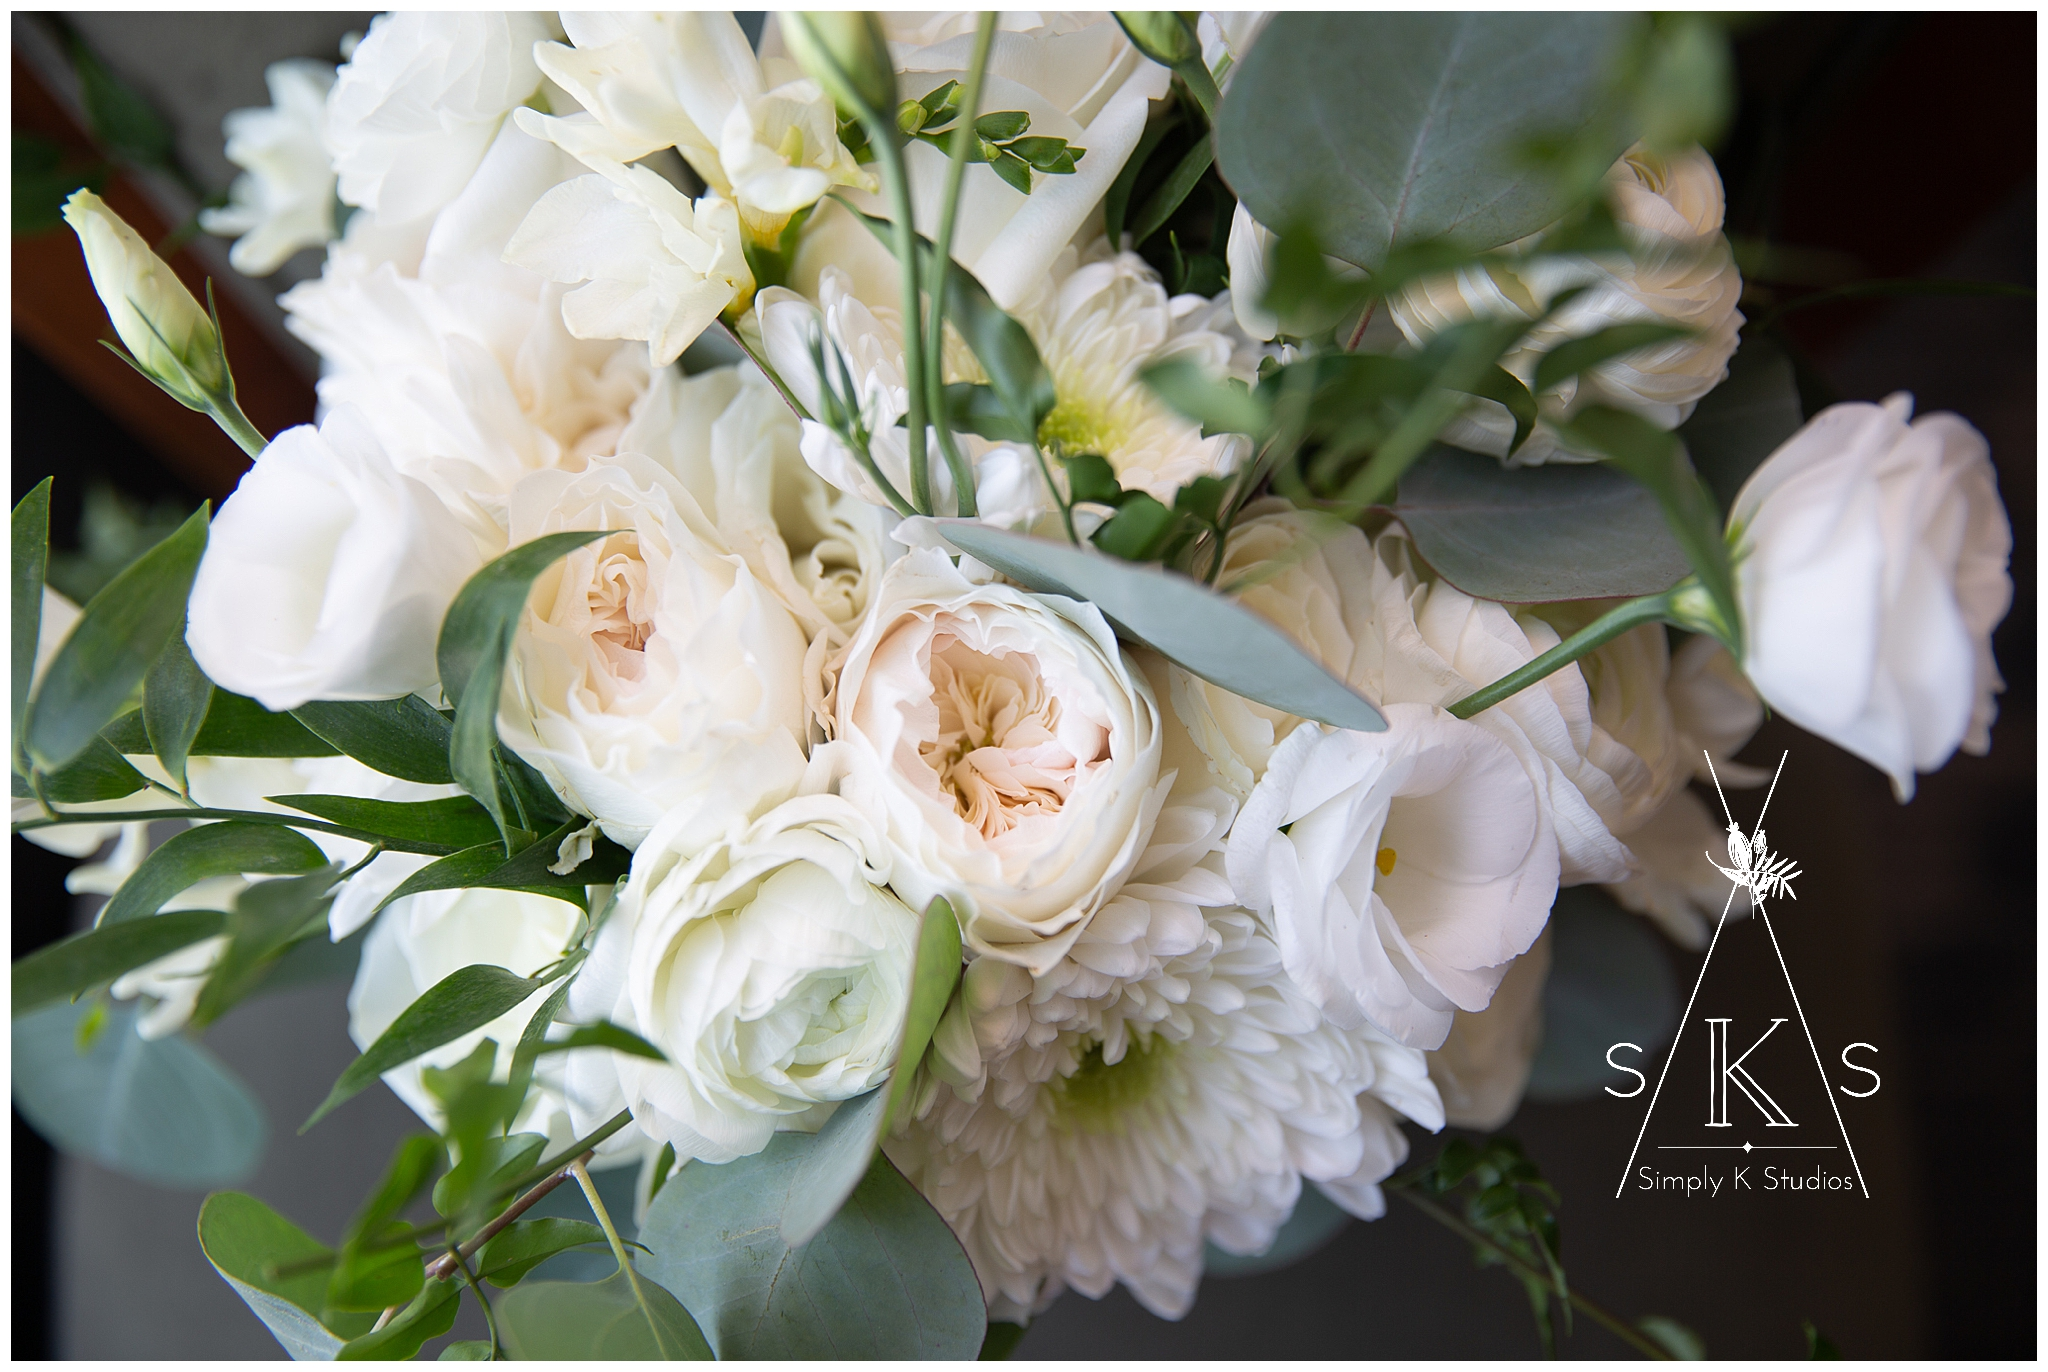 Wedding Day Bouquet Pastel Flowers Light & Airy